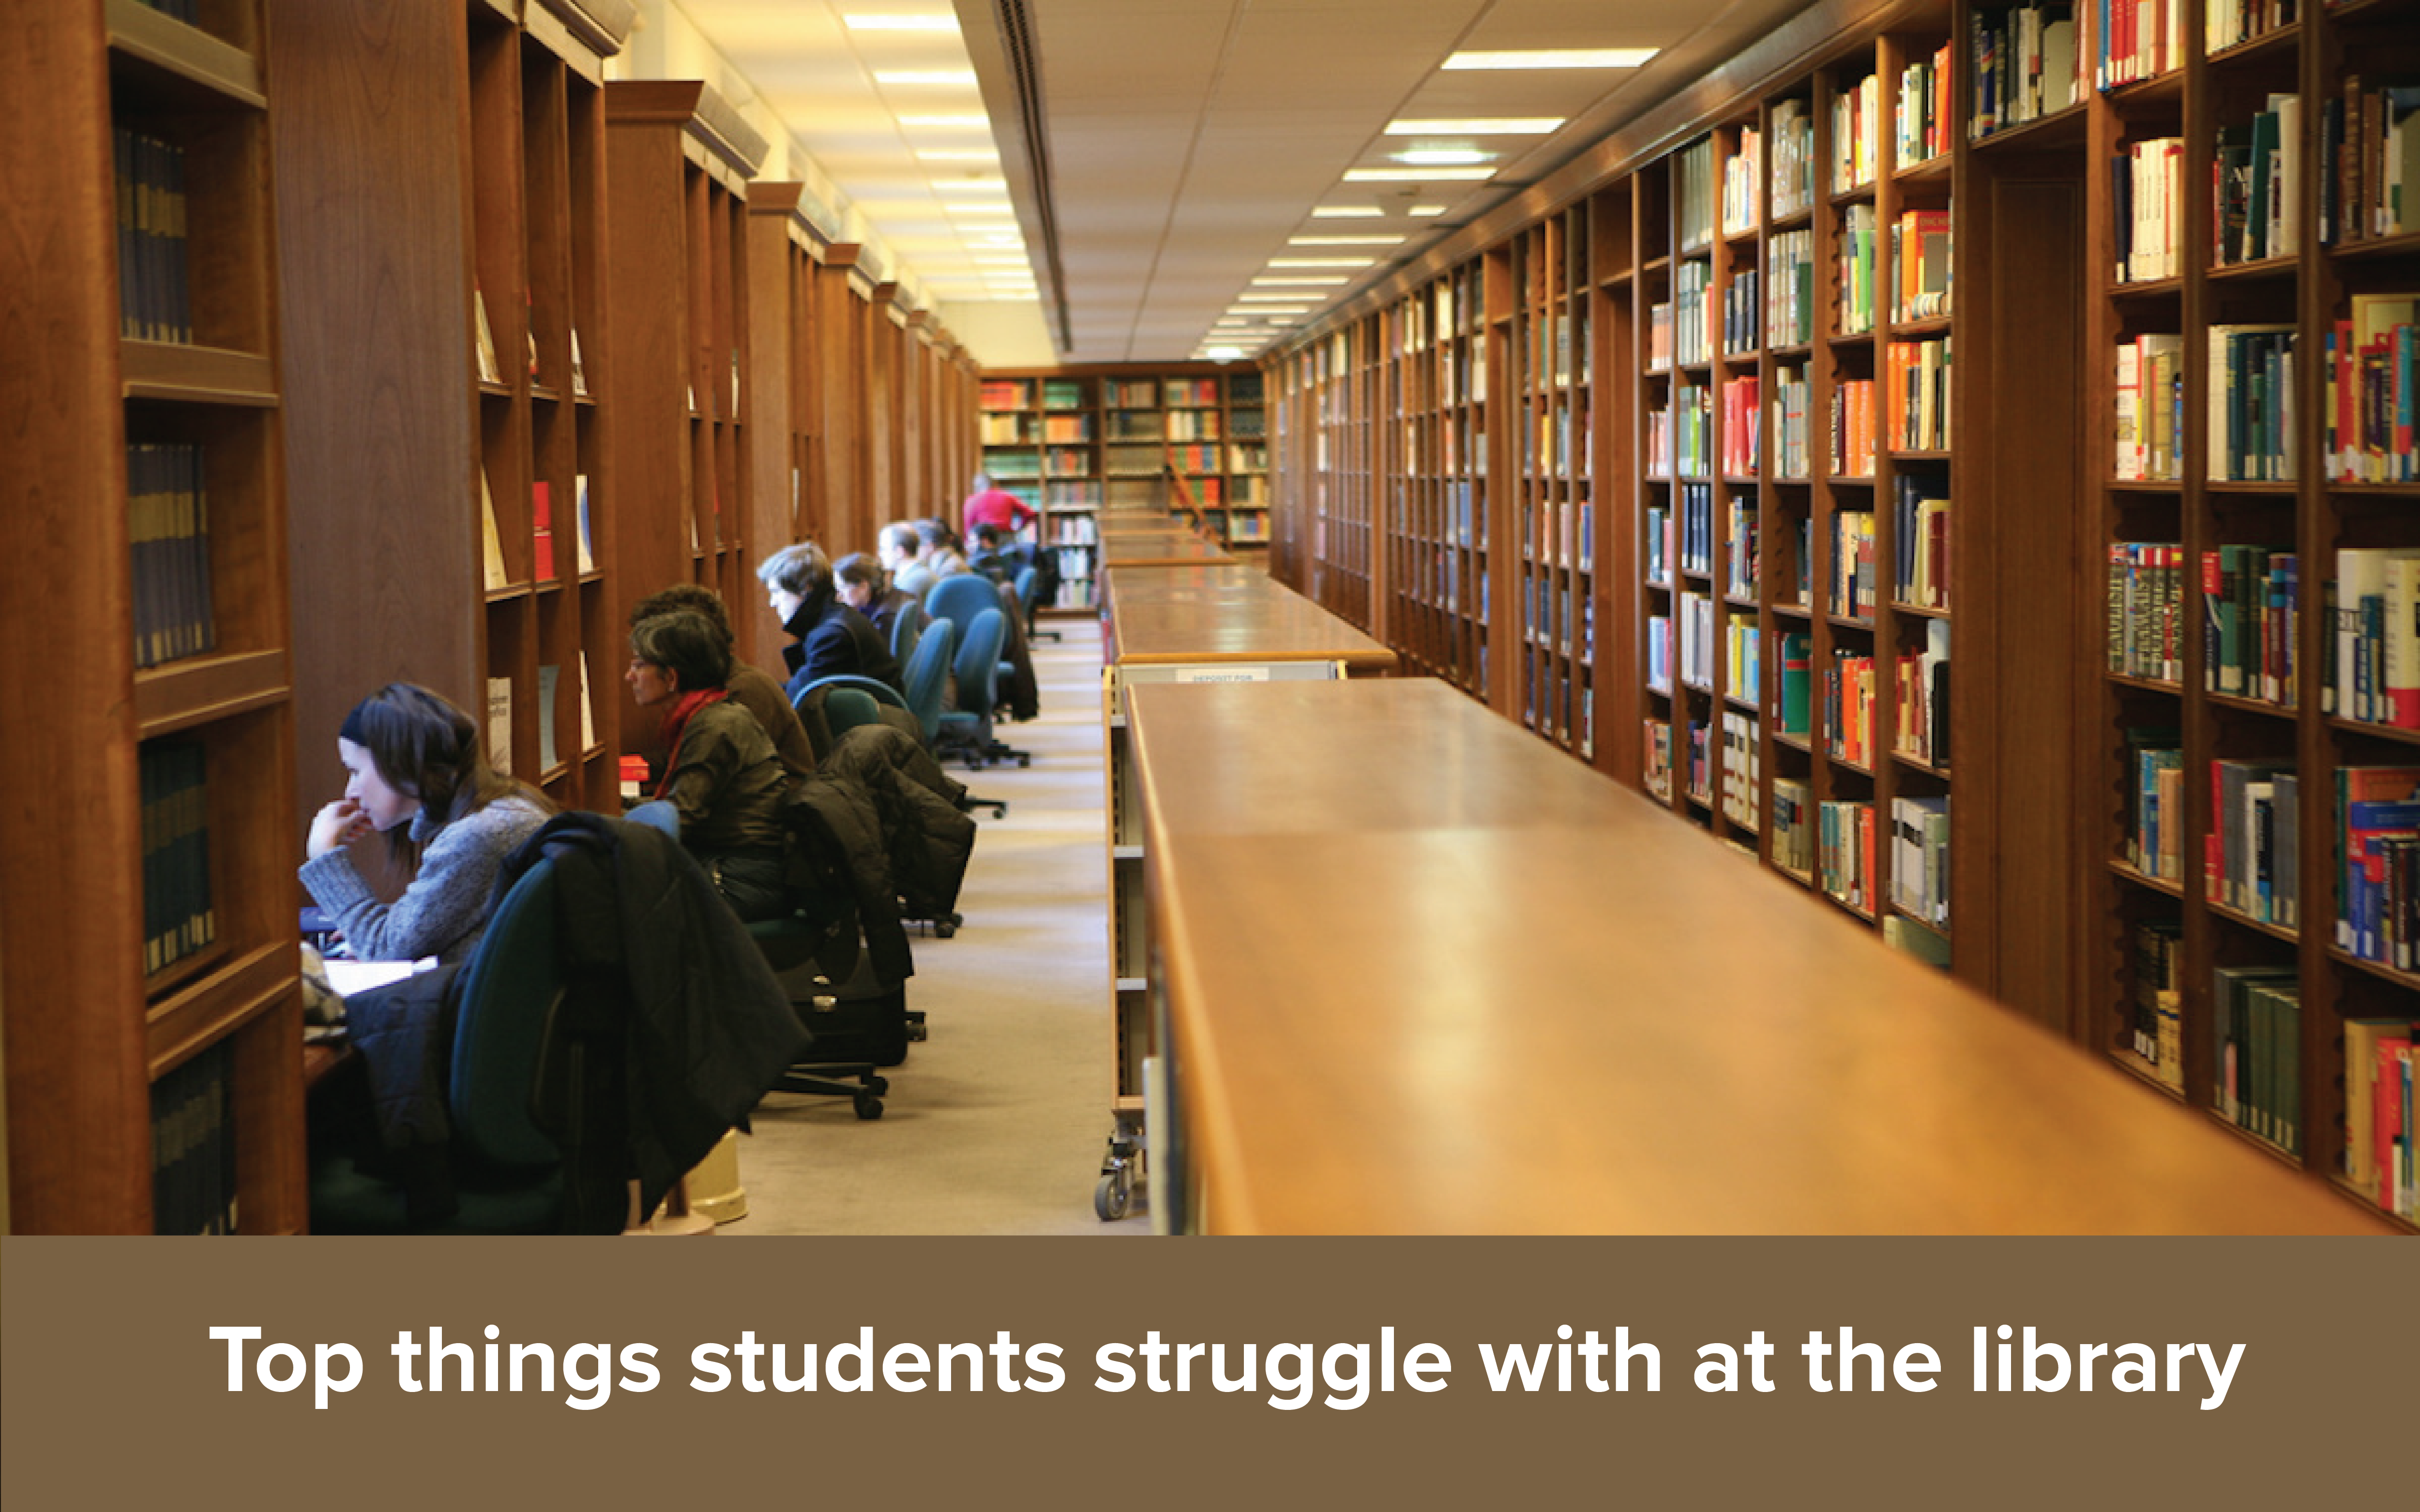 top_things_students_struggle_with_at_the_library-01